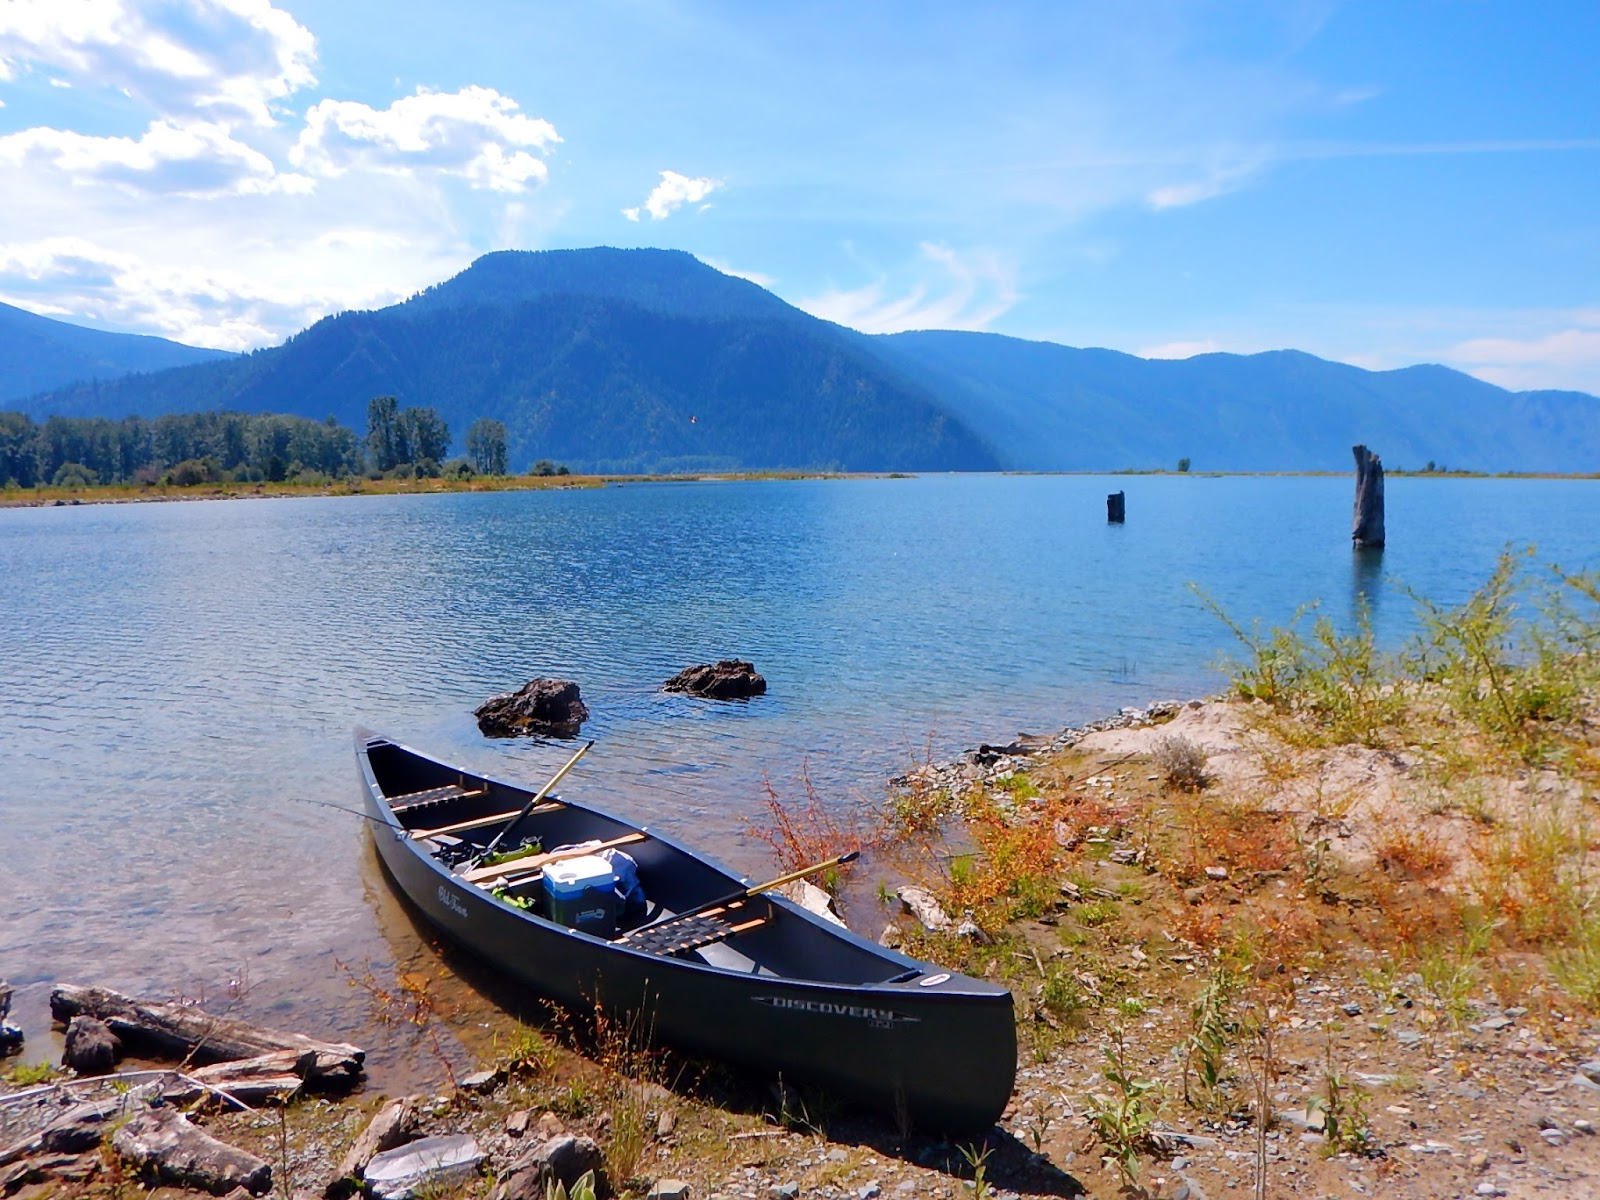 100+ Old Town Next Canoe Review – yasminroohi